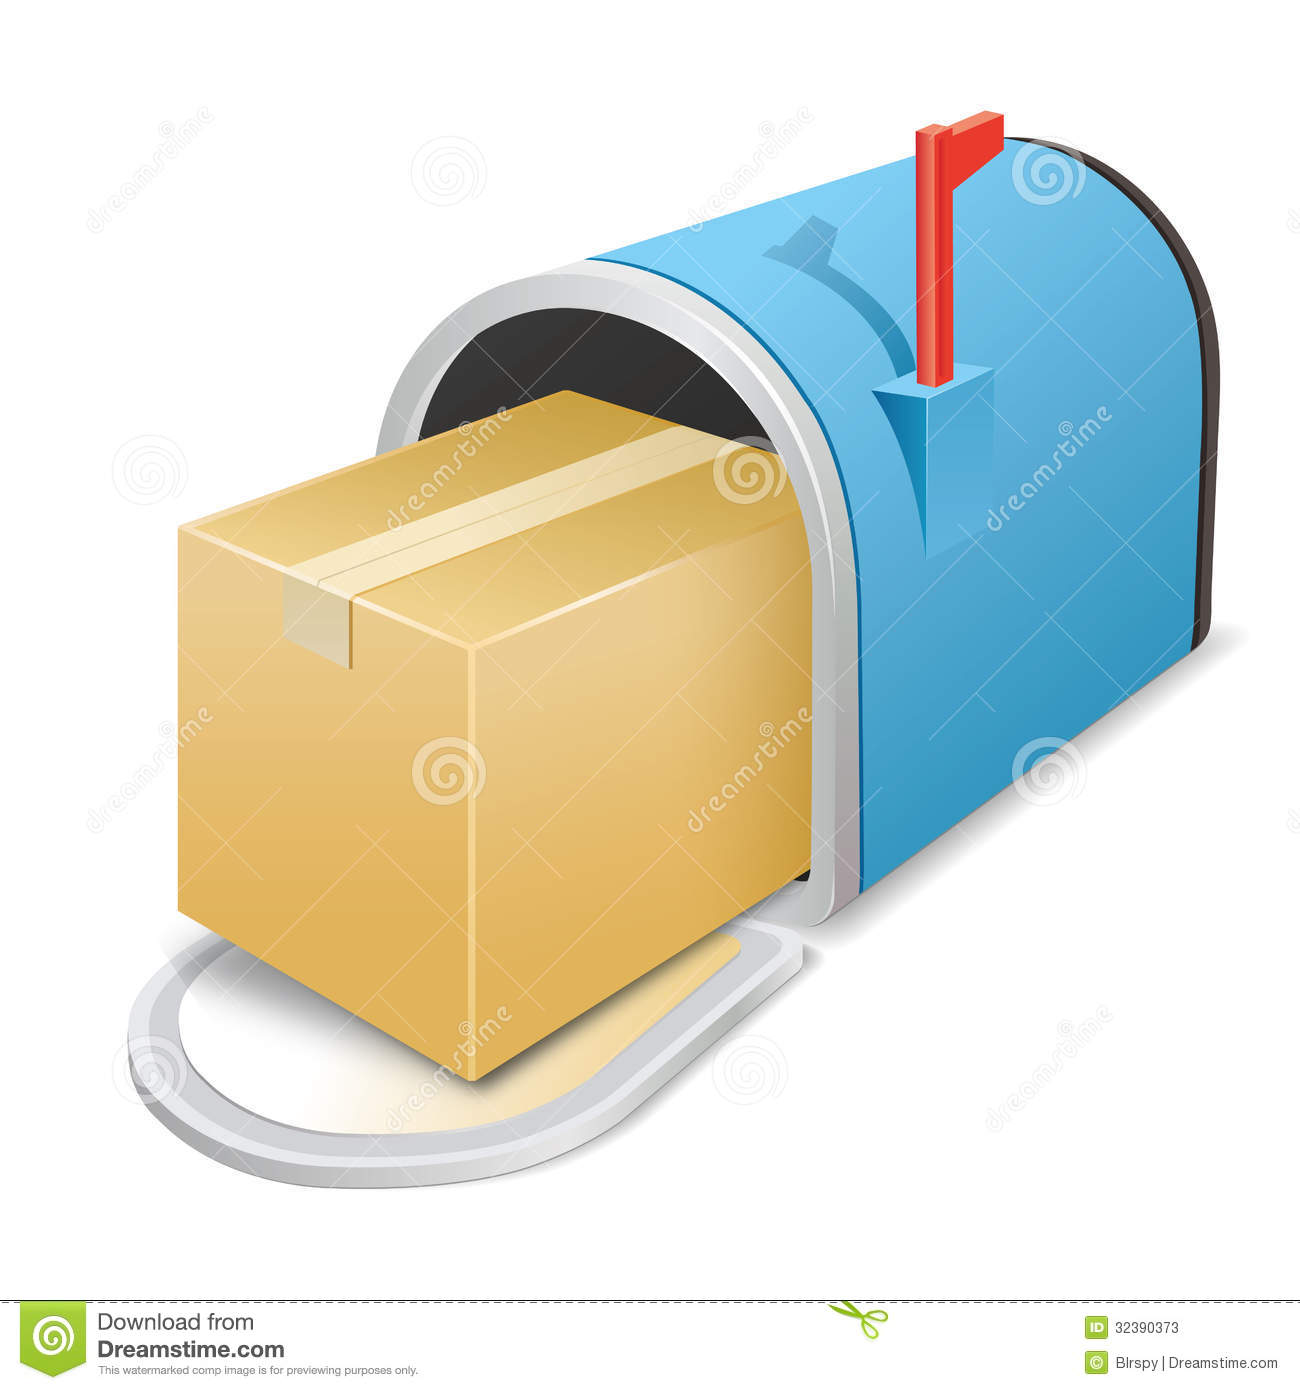 information technology in the package delivery How has information technology transformed the package delivery business.